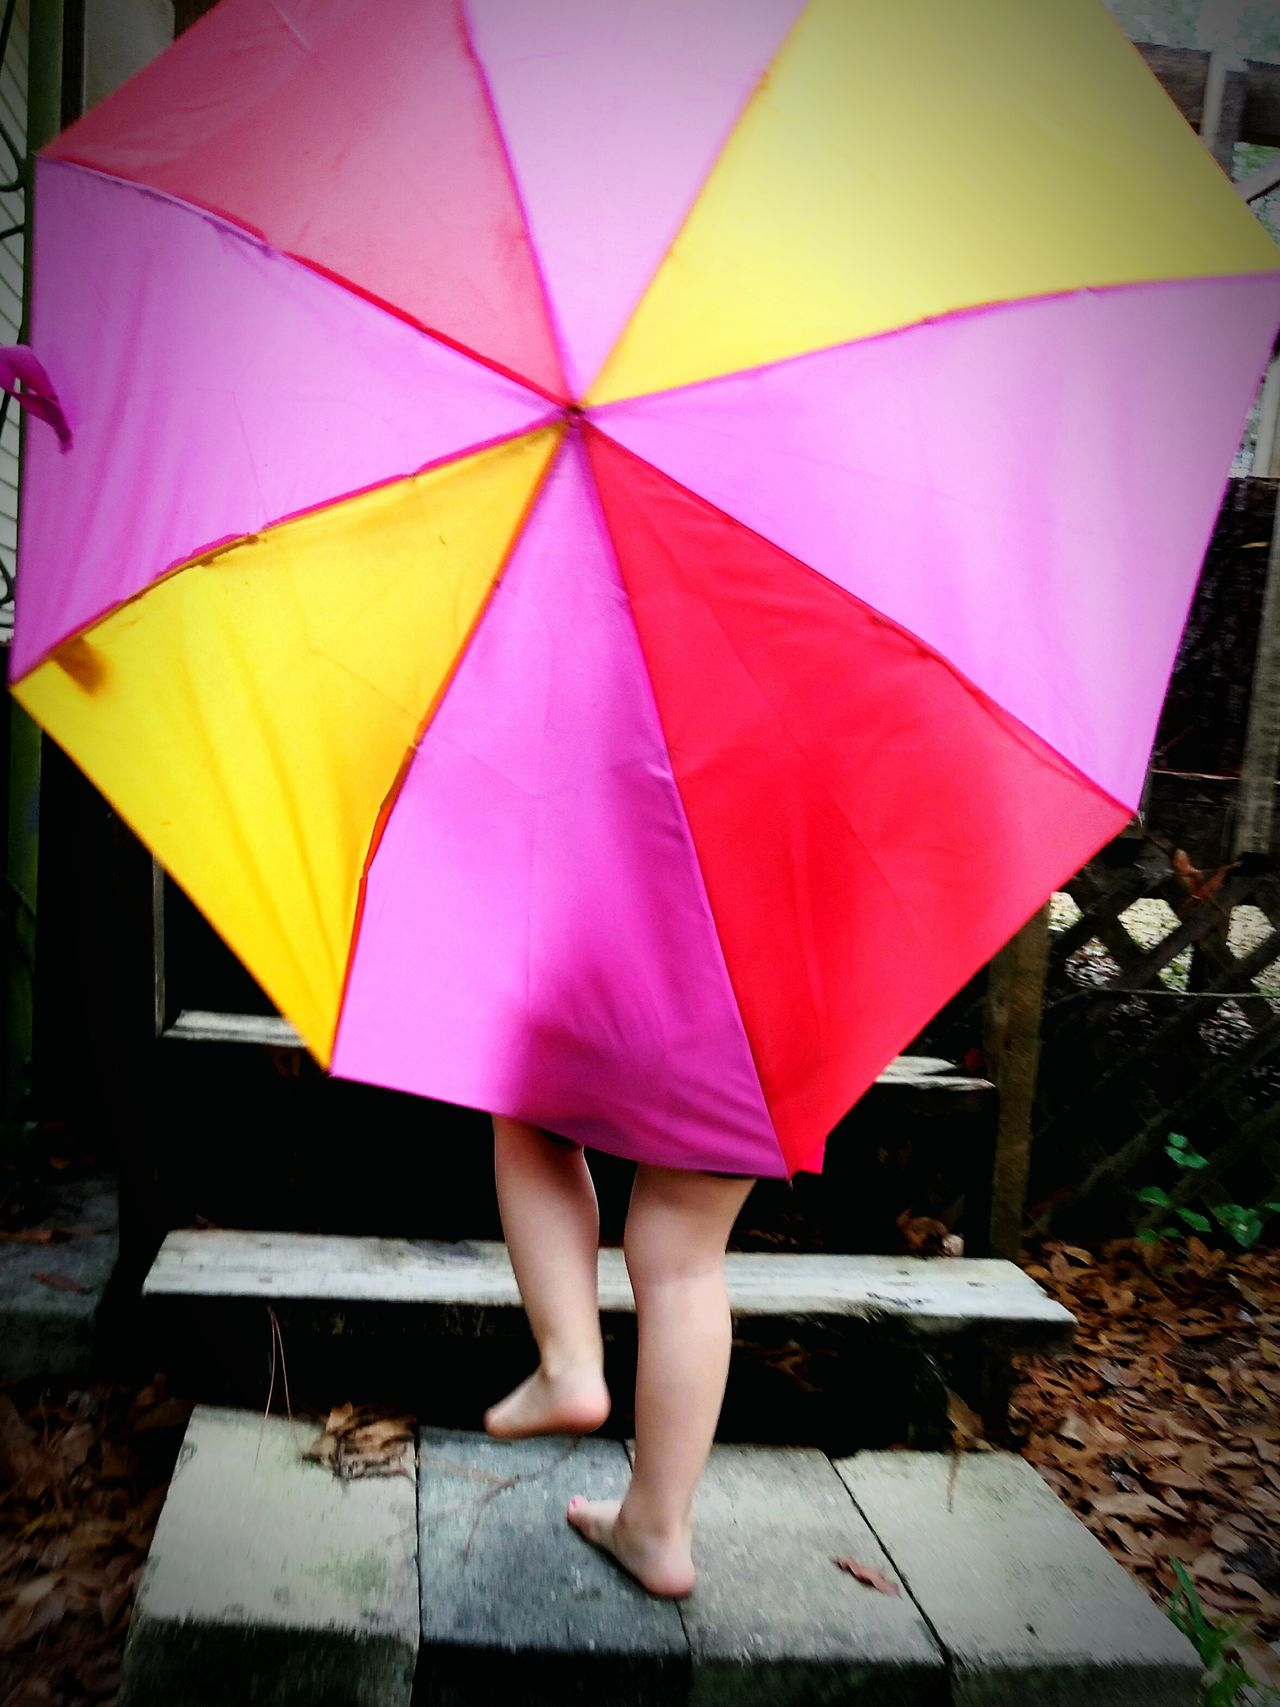 Rain And Rainbows Multi Colored Umbrellas Playing In The Rain Singing In The Rain From Behind Childhood People Family Weekends Spring Toddlers  Millennial Pink The Secret Spaces EyeEm Diversity Art Is Everywhere Live For The Story